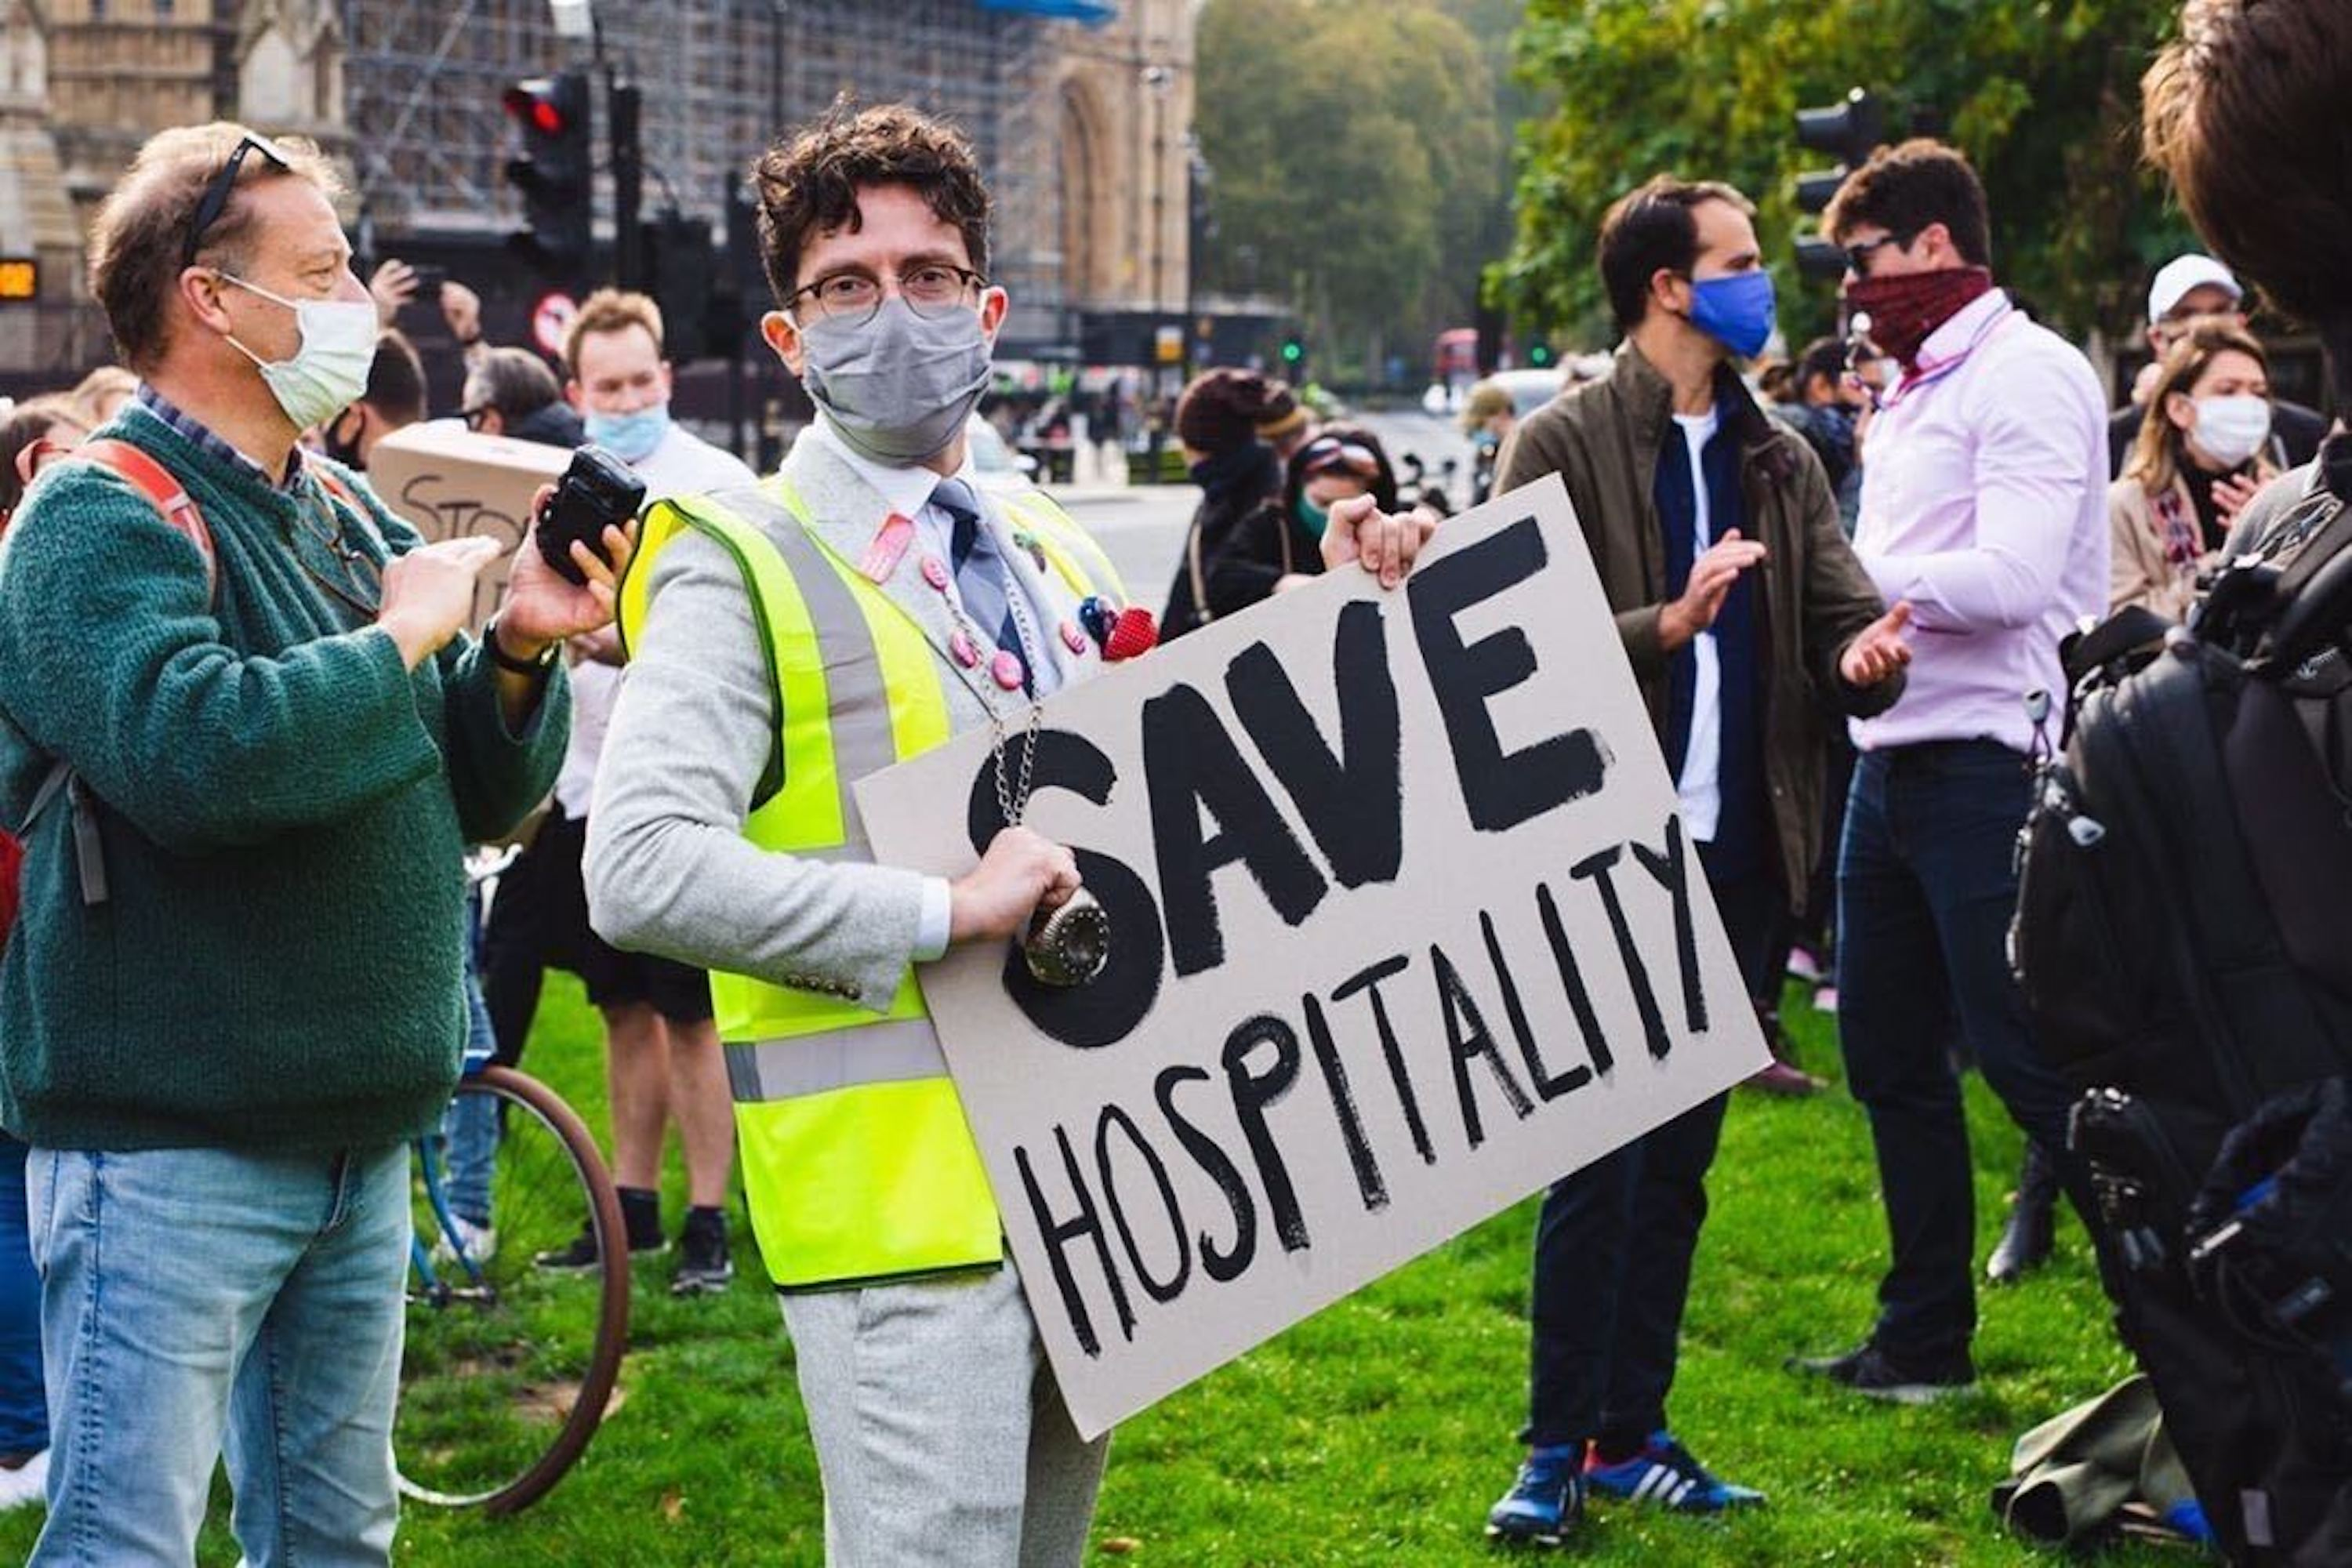 """A protester wearing a mask and a hi-vis jacket holds up a placard that reads """"save hospitality,"""" in capital letters, at Parliament Square in London. He is surrounded by fellow protesters, also in masks"""